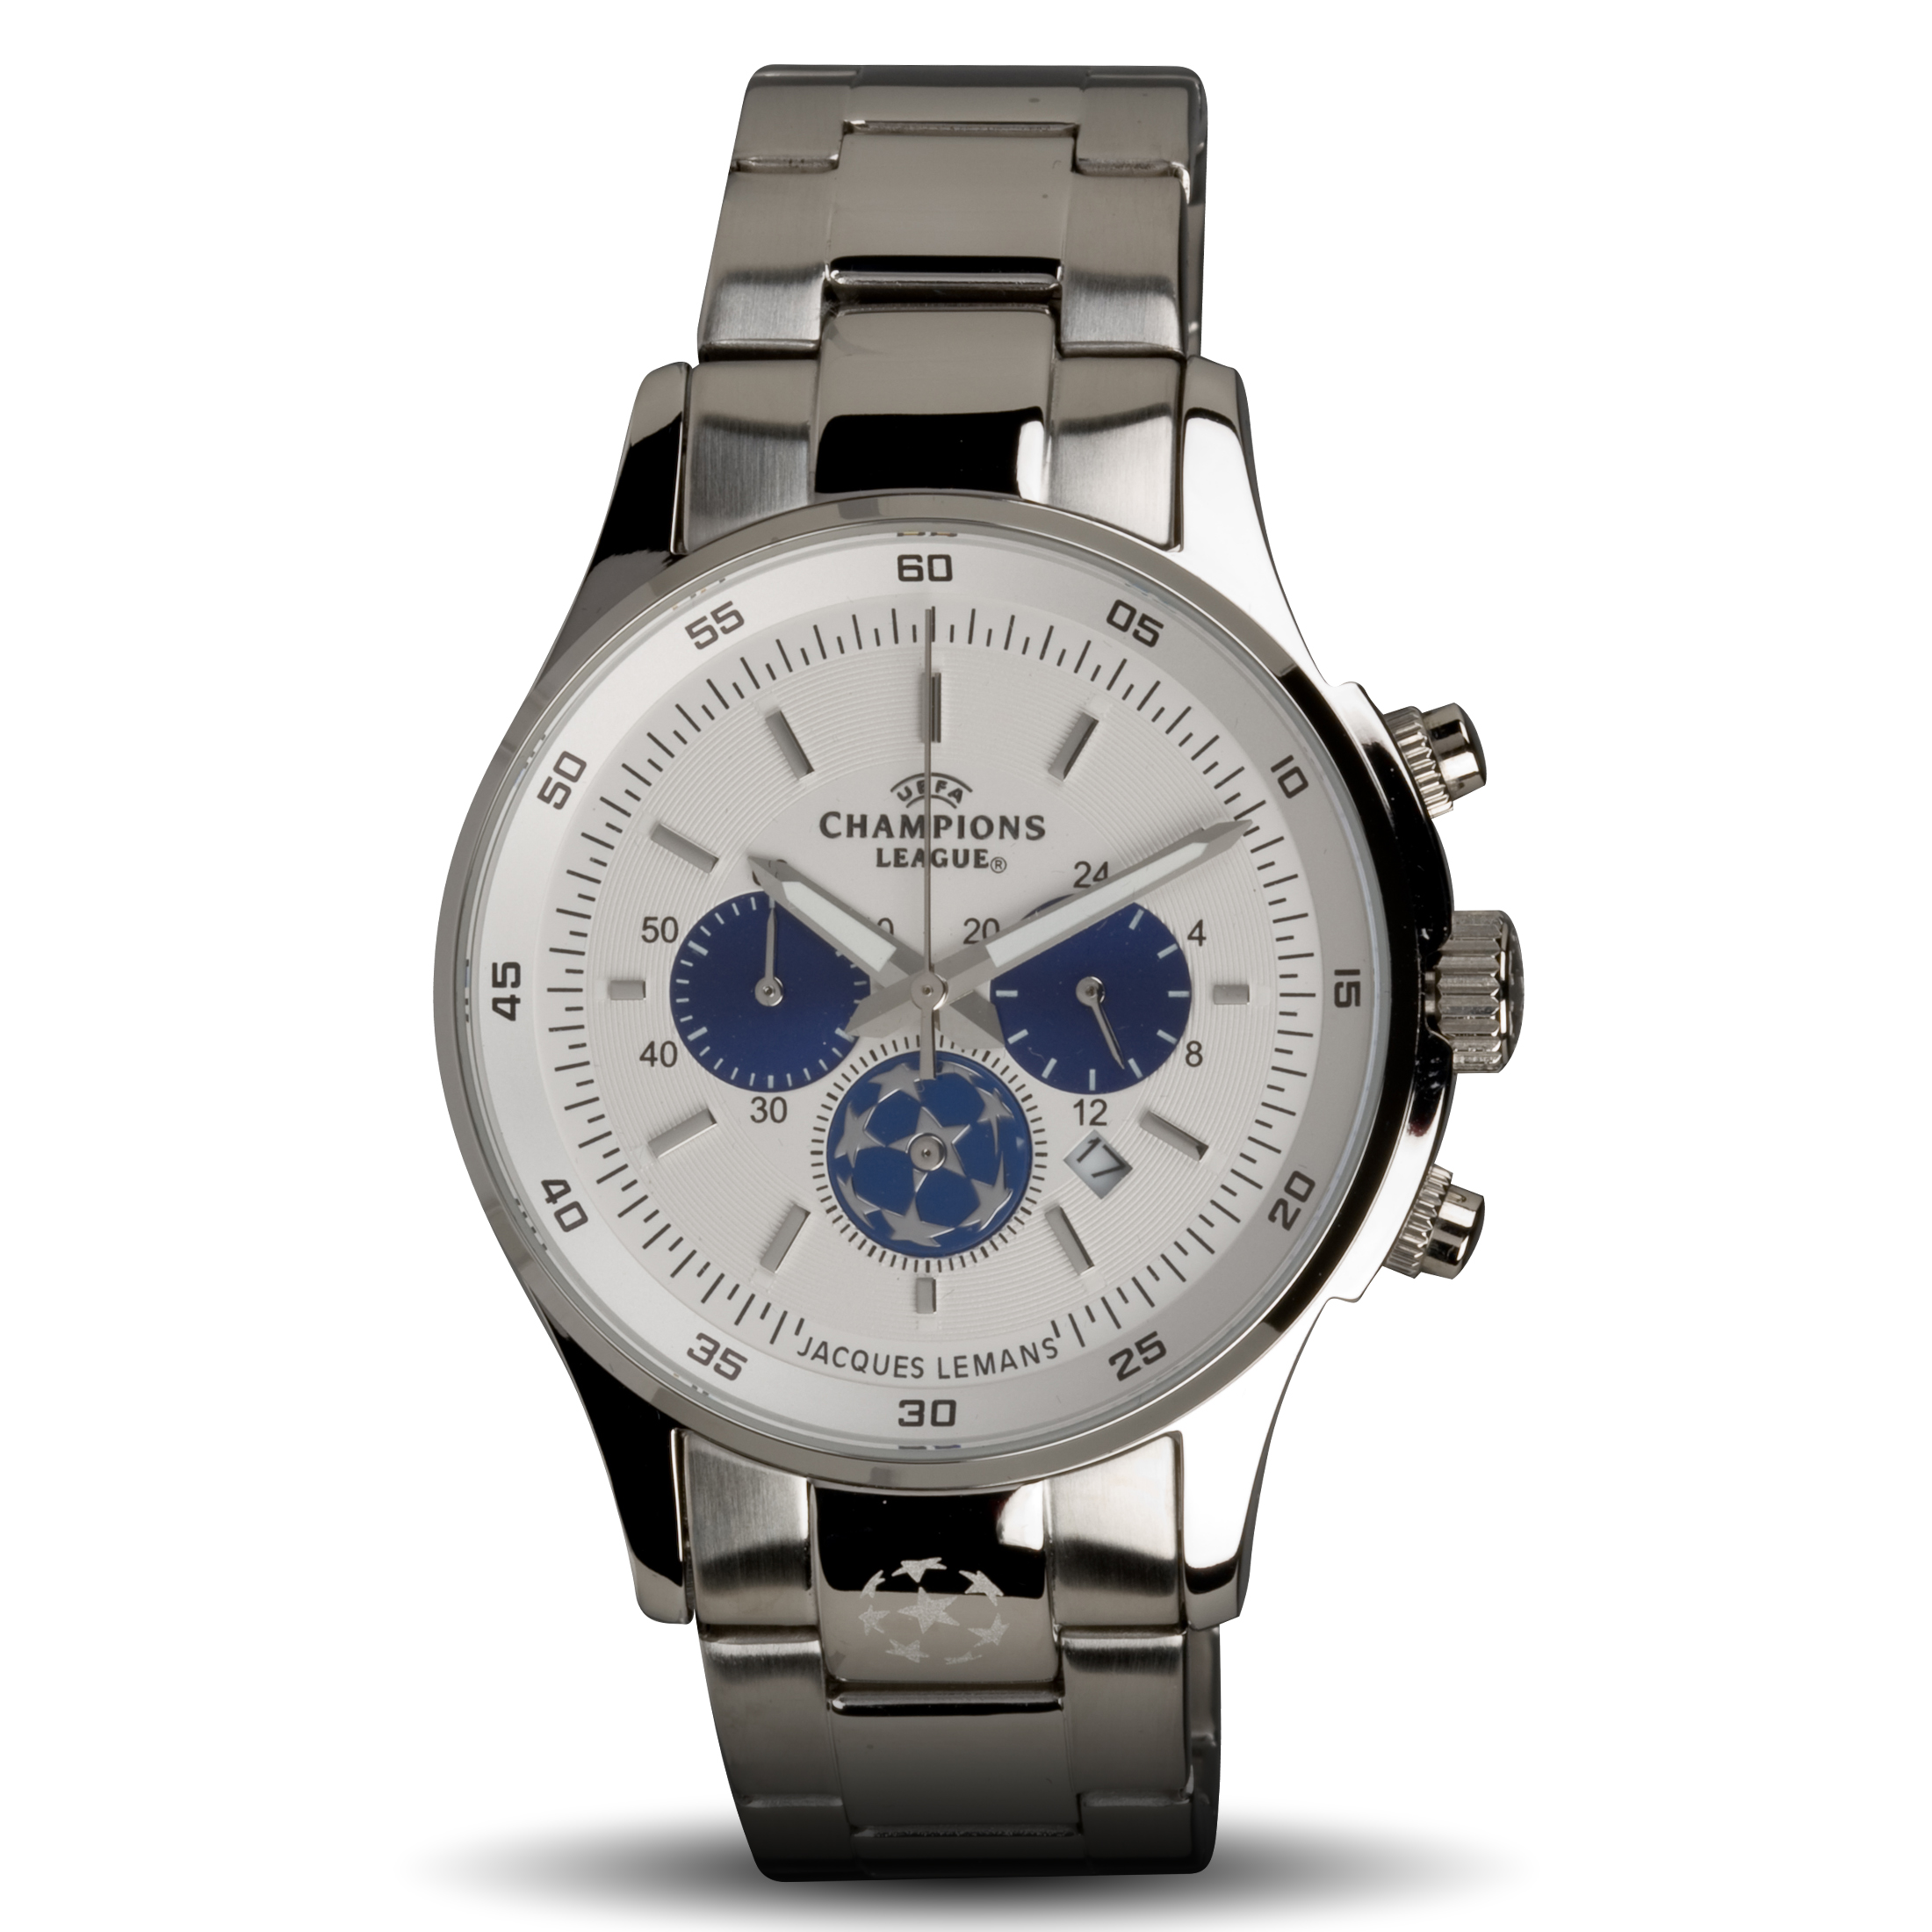 UEFA Champions League Stainless Steel Watch - White/Blue